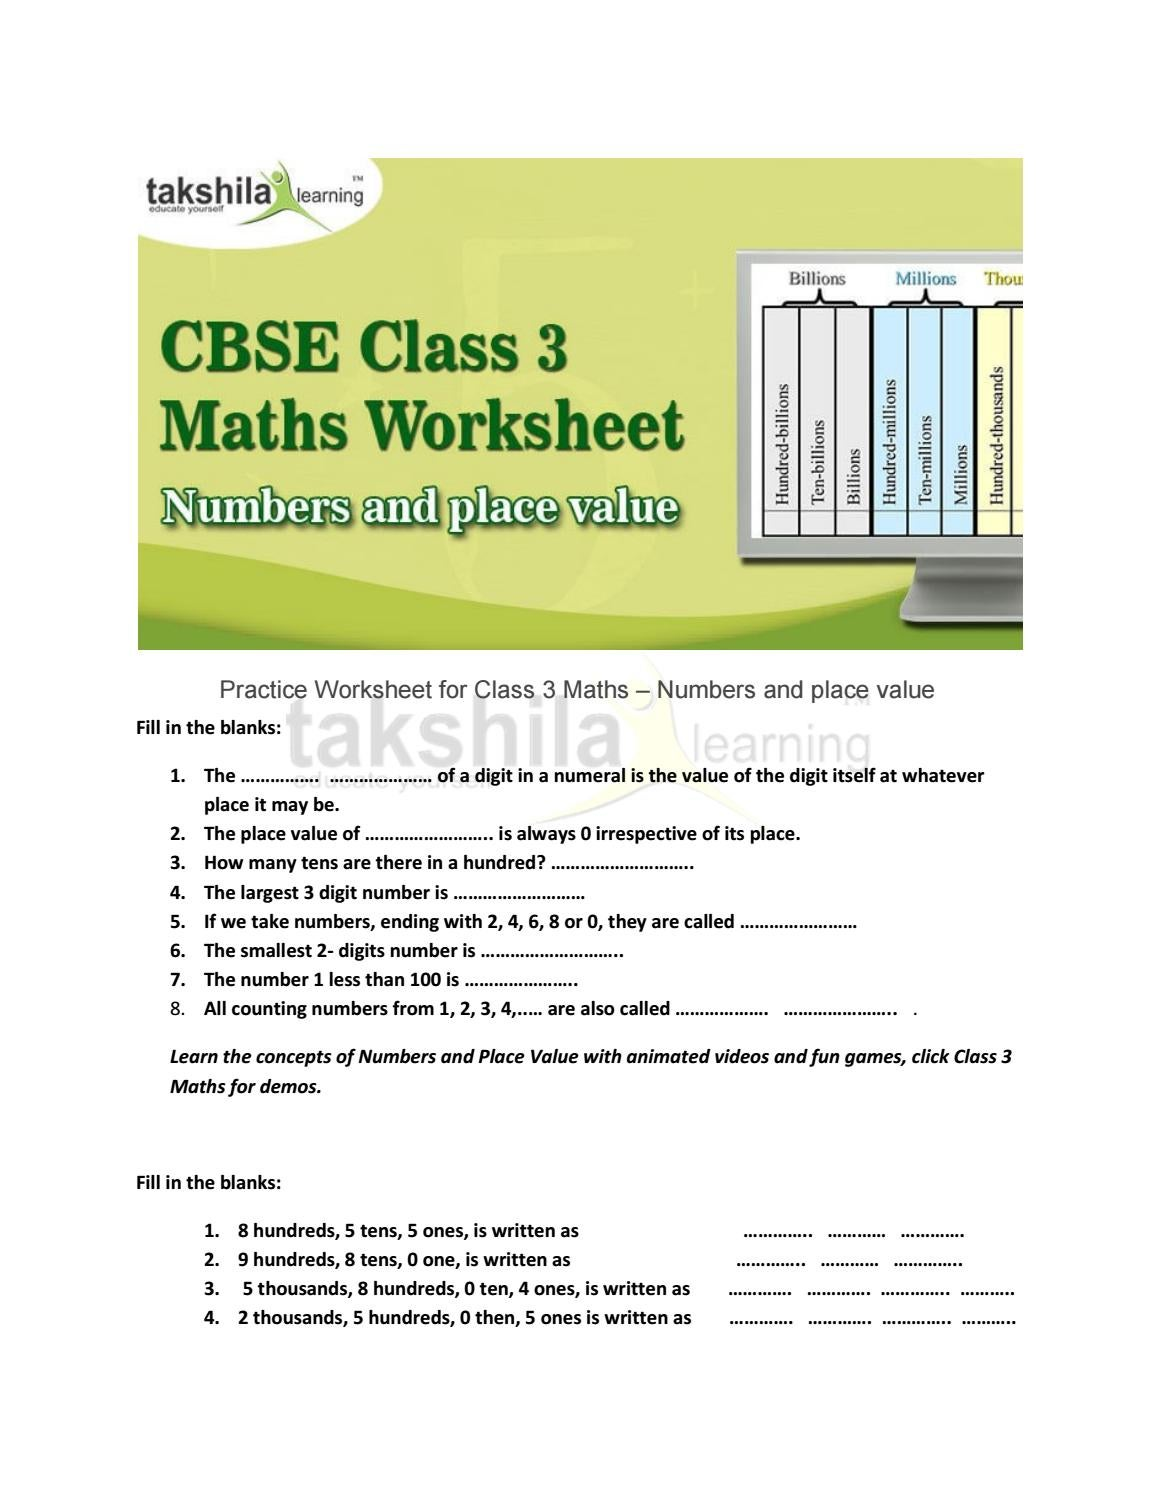 hight resolution of Cbse class 3 maths worksheet numbers and place value by Takshila learning    Online Classes - issuu